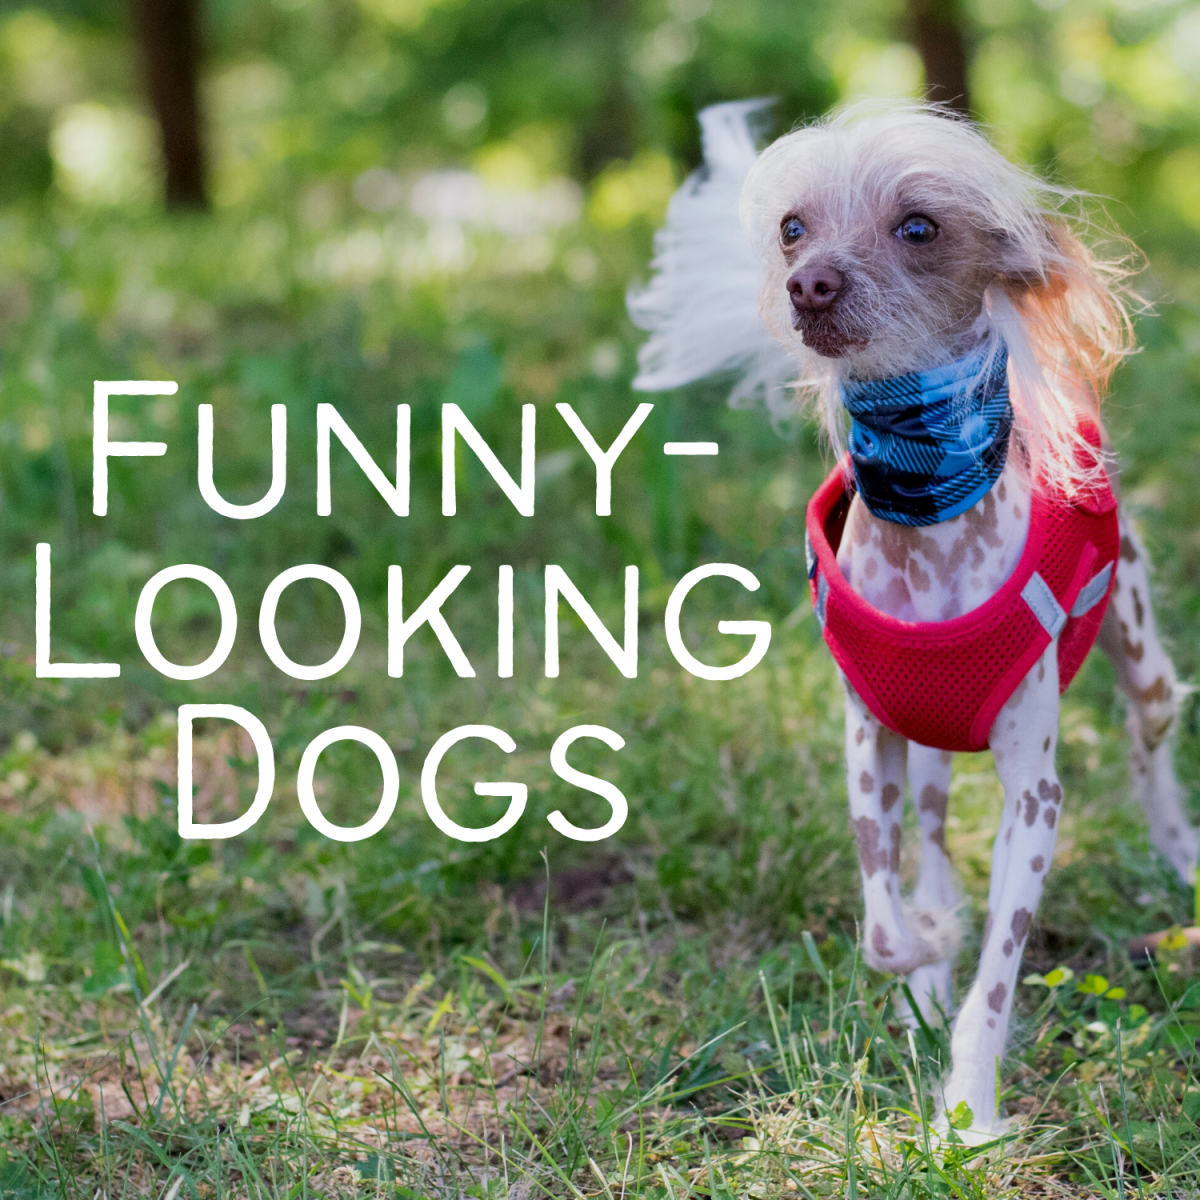 Seven of the weirdest, funniest-looking dogs in the world.